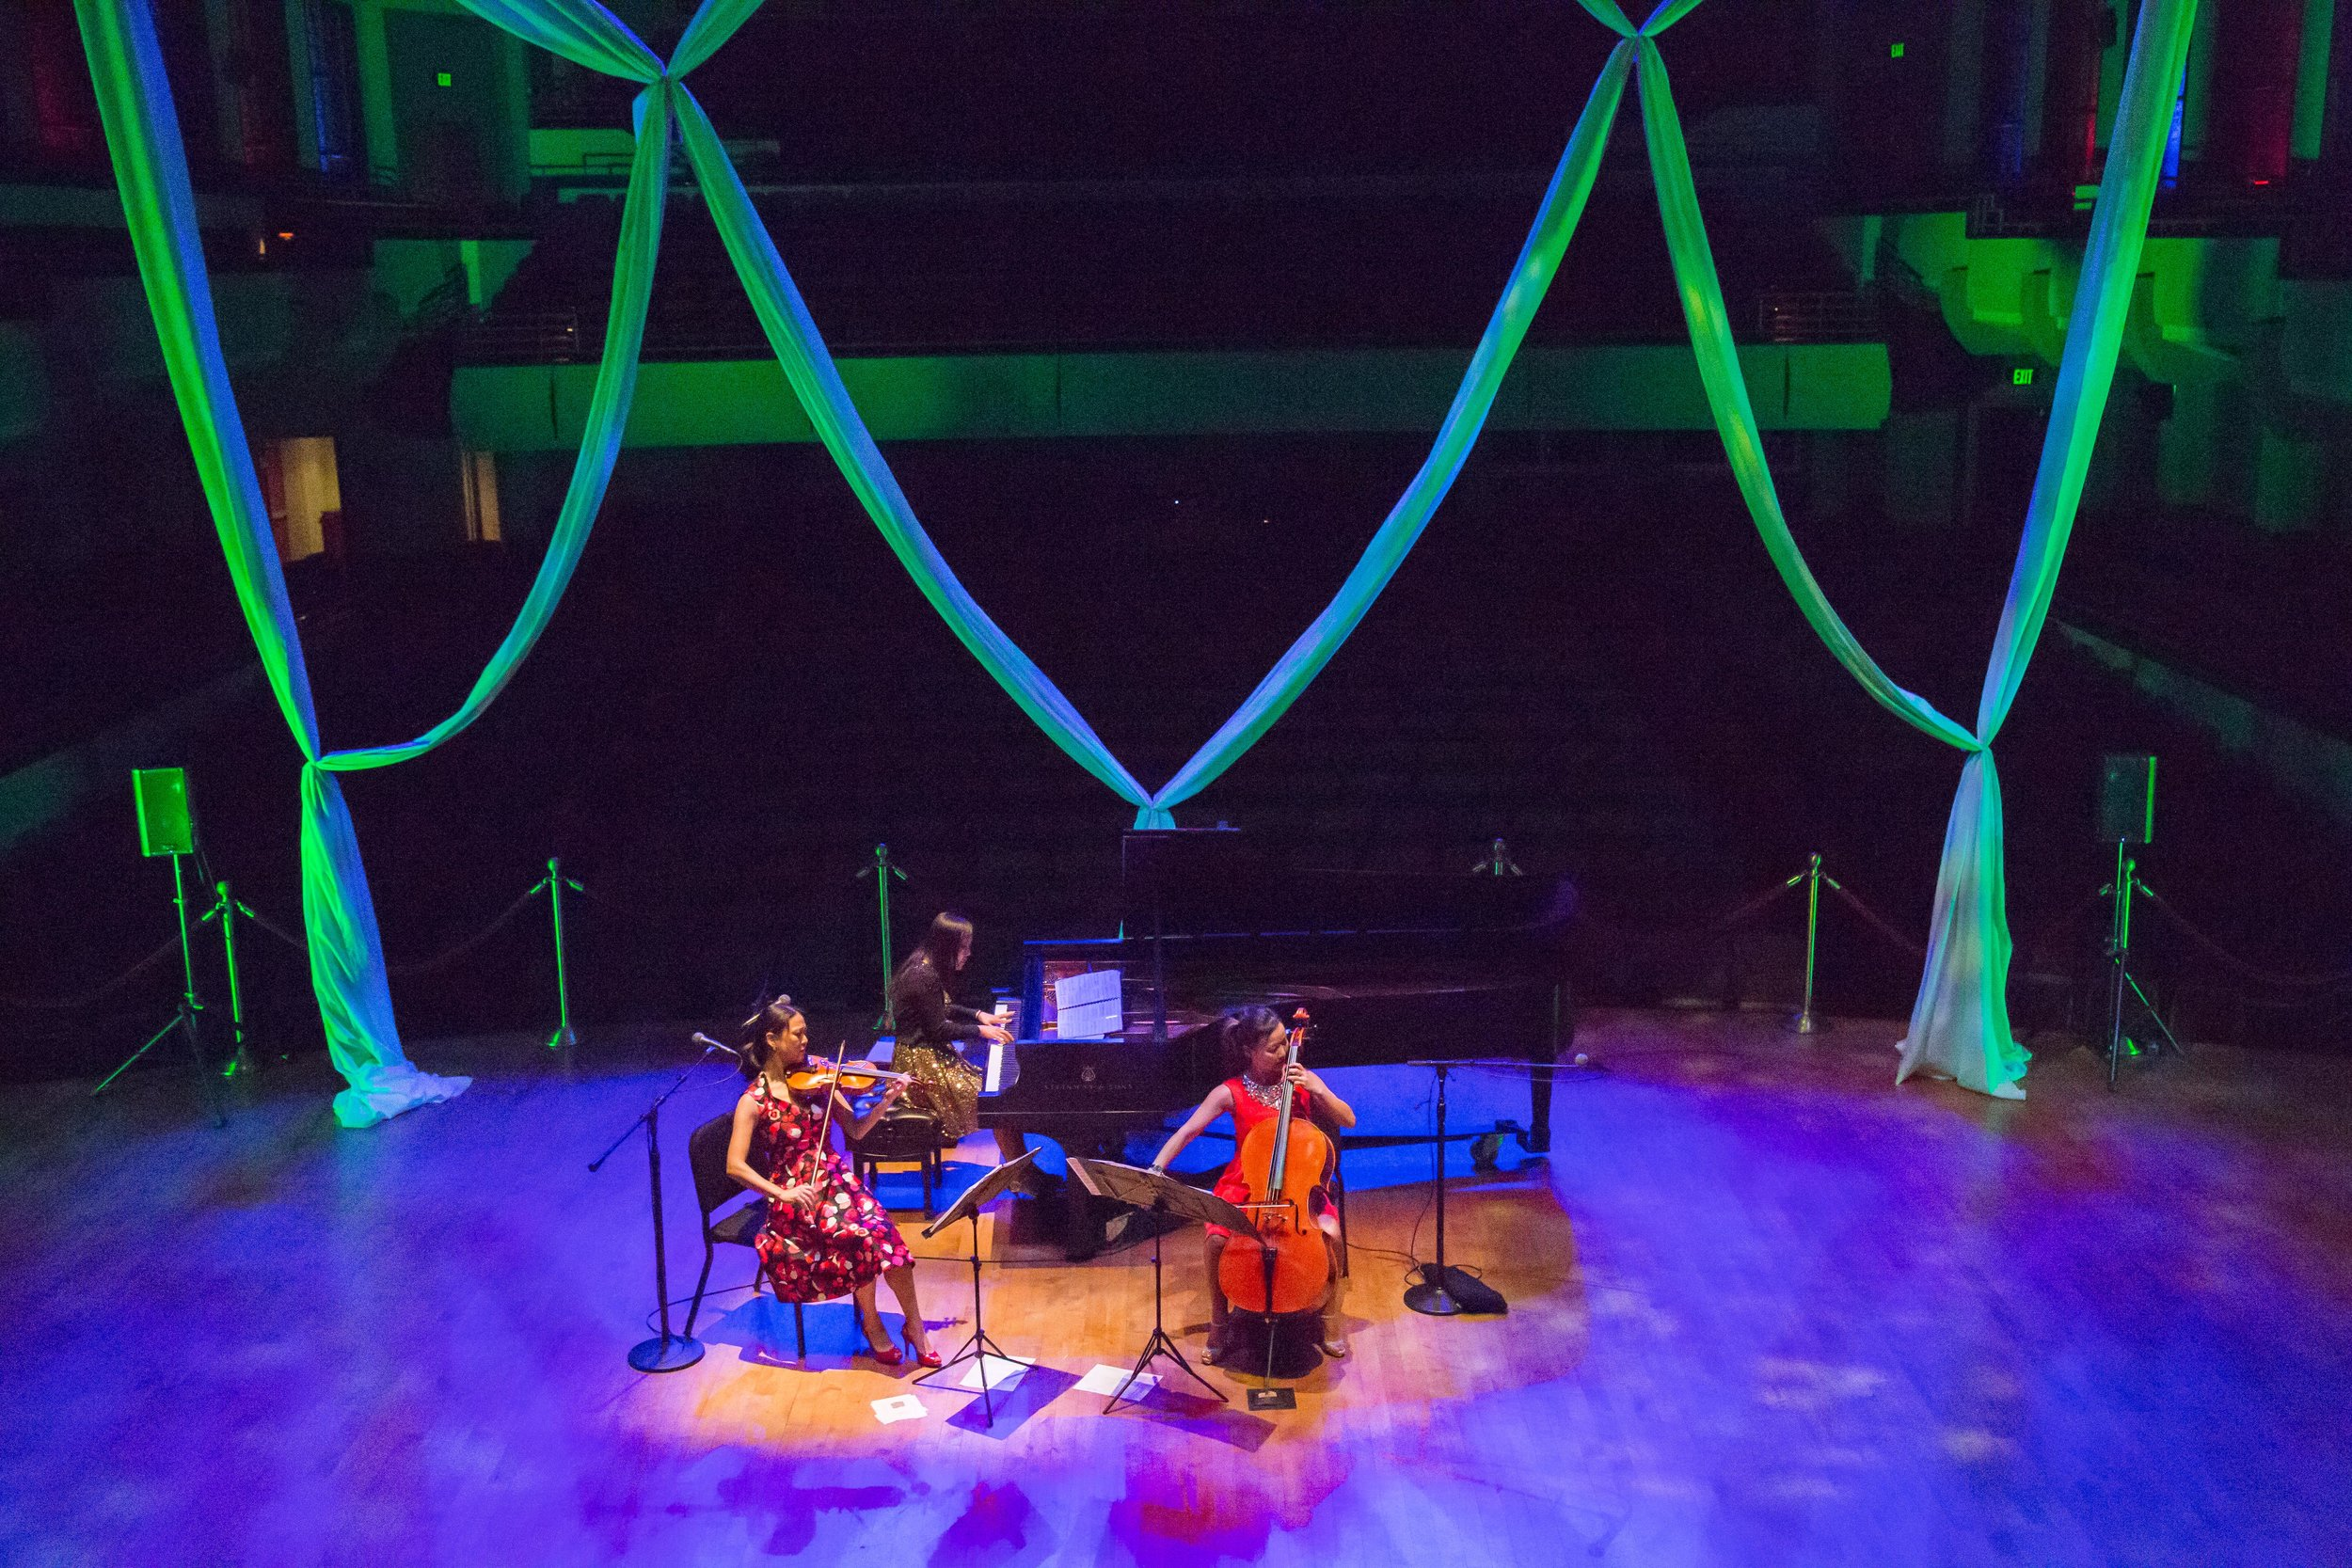 Another ah-mazing beautiful stage at University of Alabama in Birmingham March 5, 2017! Thank you, Ahn Trio had so much fun!